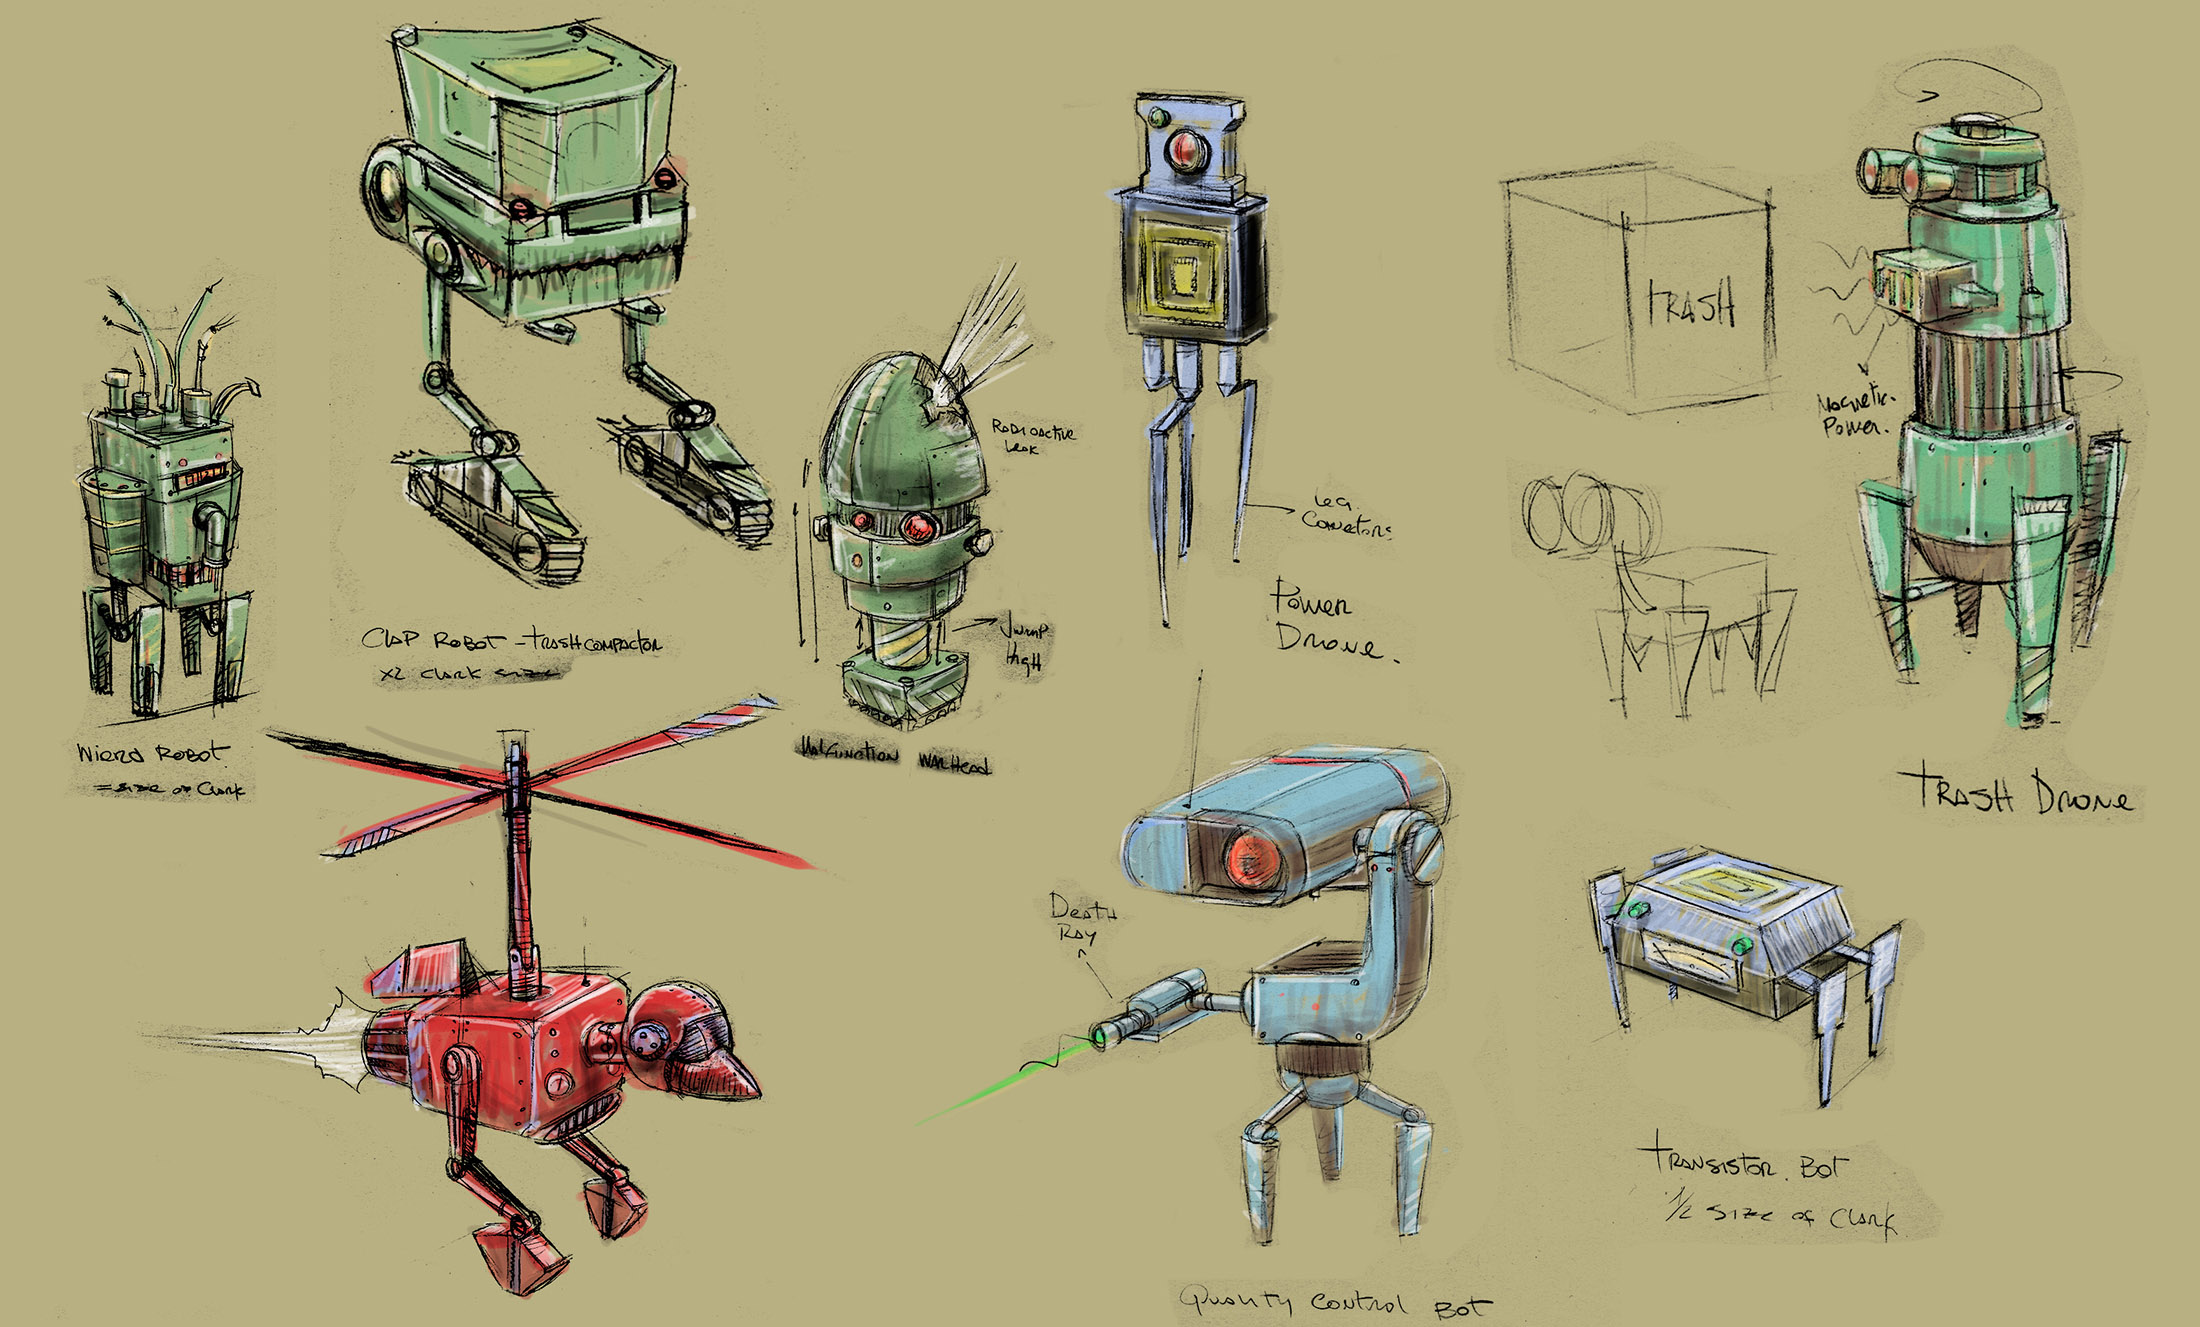 Concepts for some of the trash bots